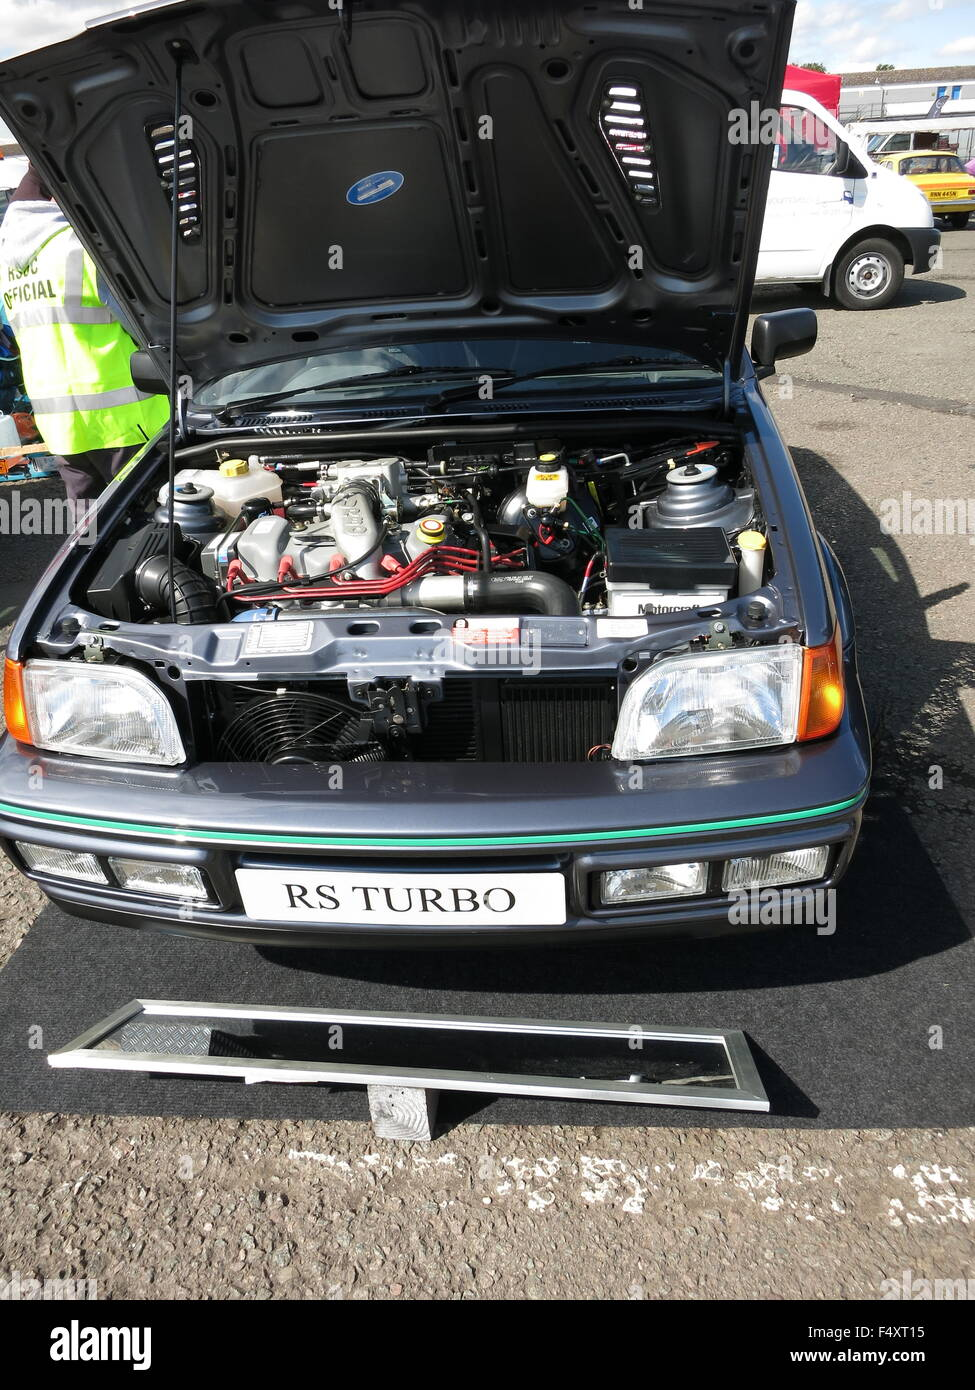 Ford Fiesta Mk Rs Turbo Mercury Grey Example Concours Car At Rsoc Rs Owners Club